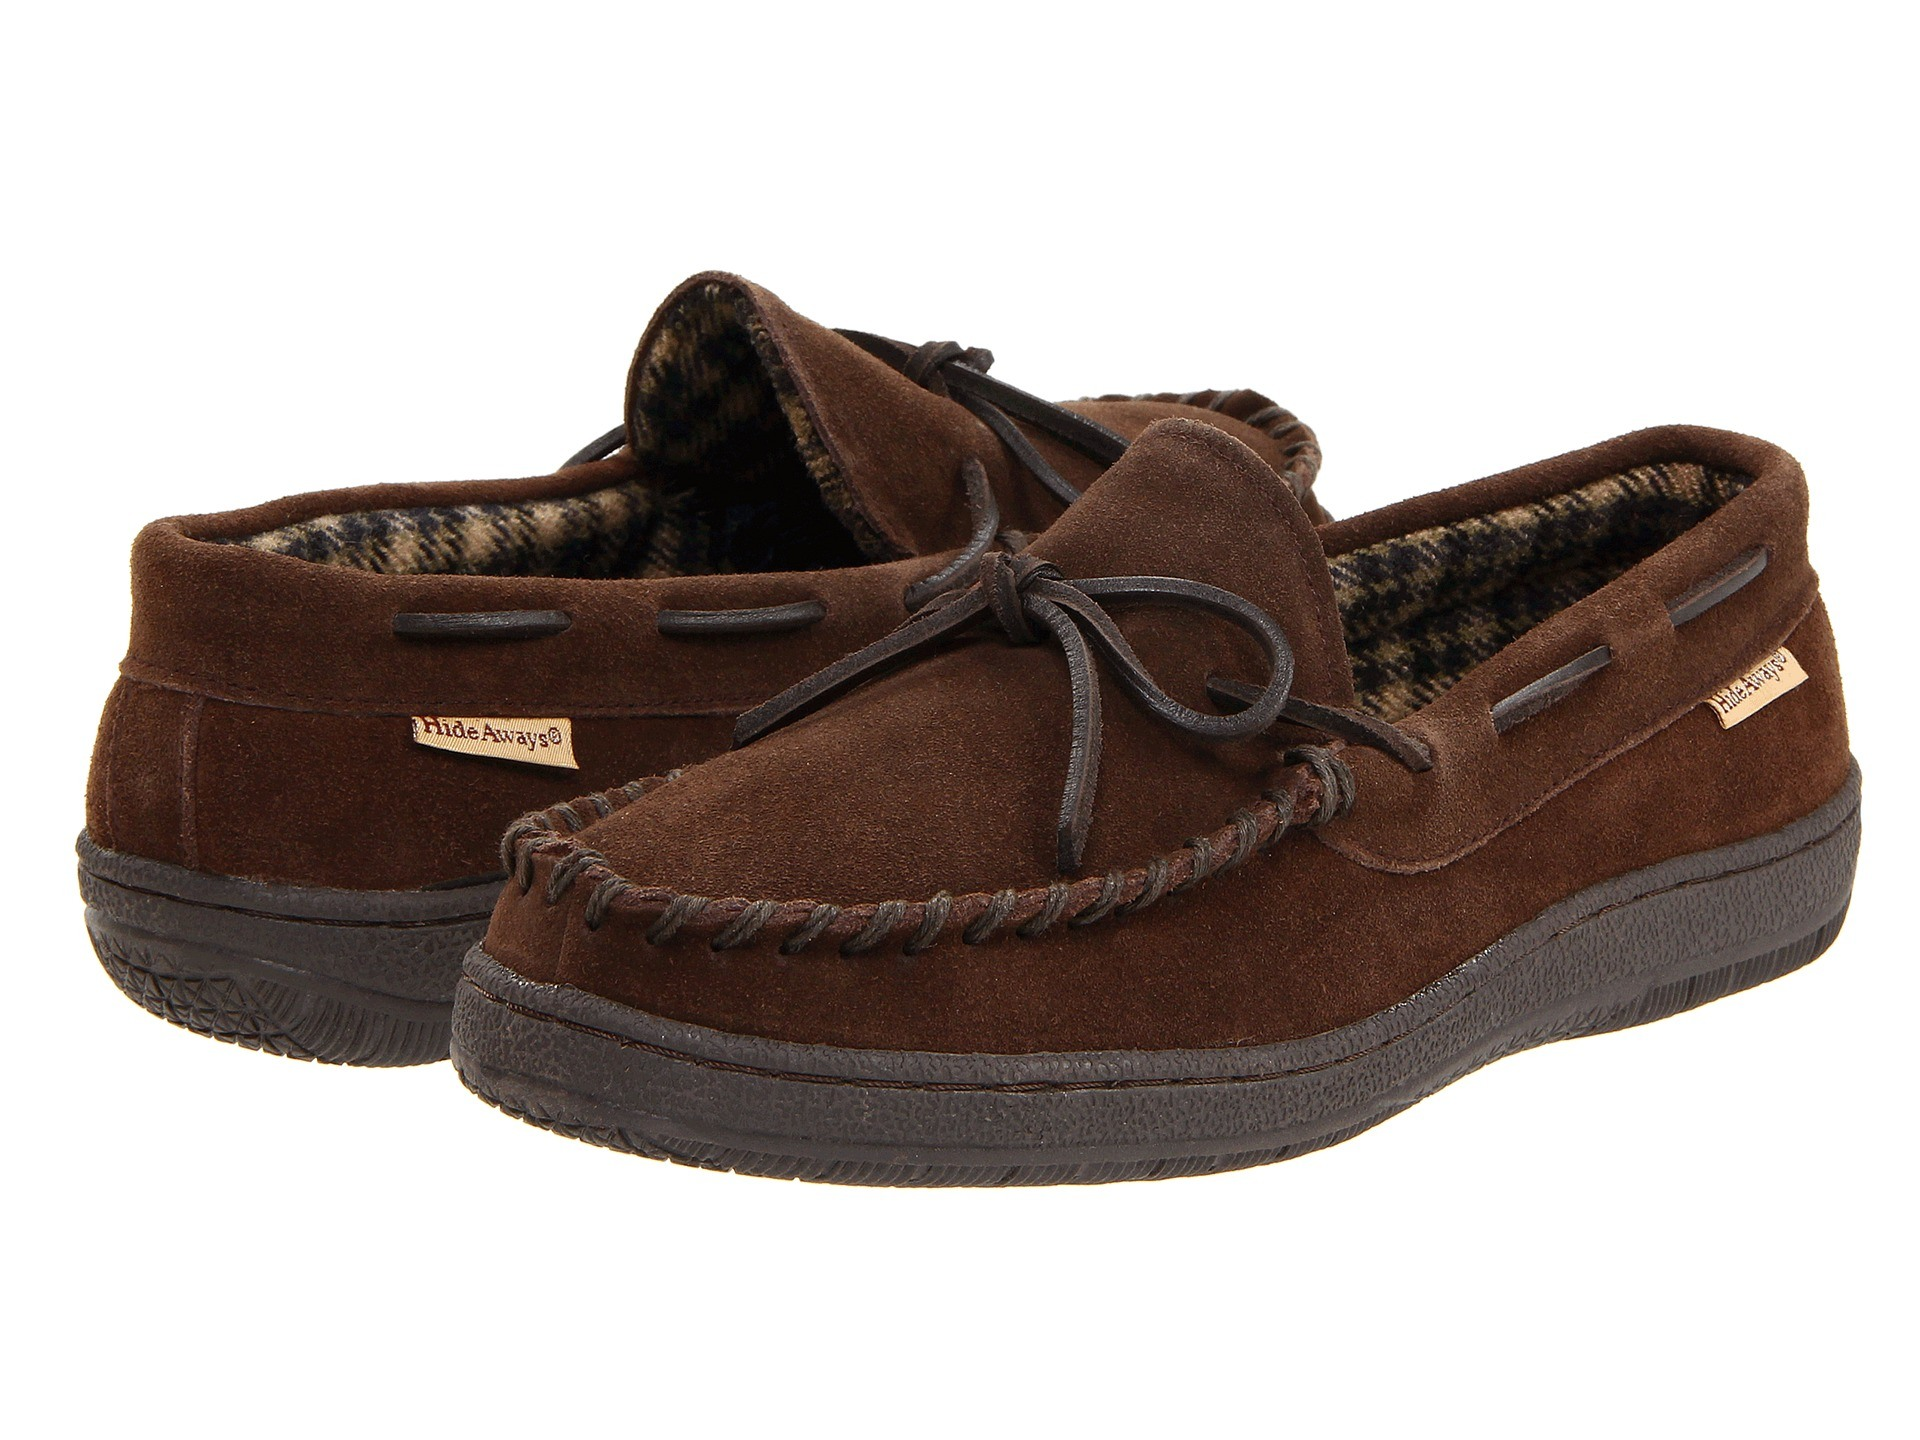 Comfortble Home Slipper Moccasin